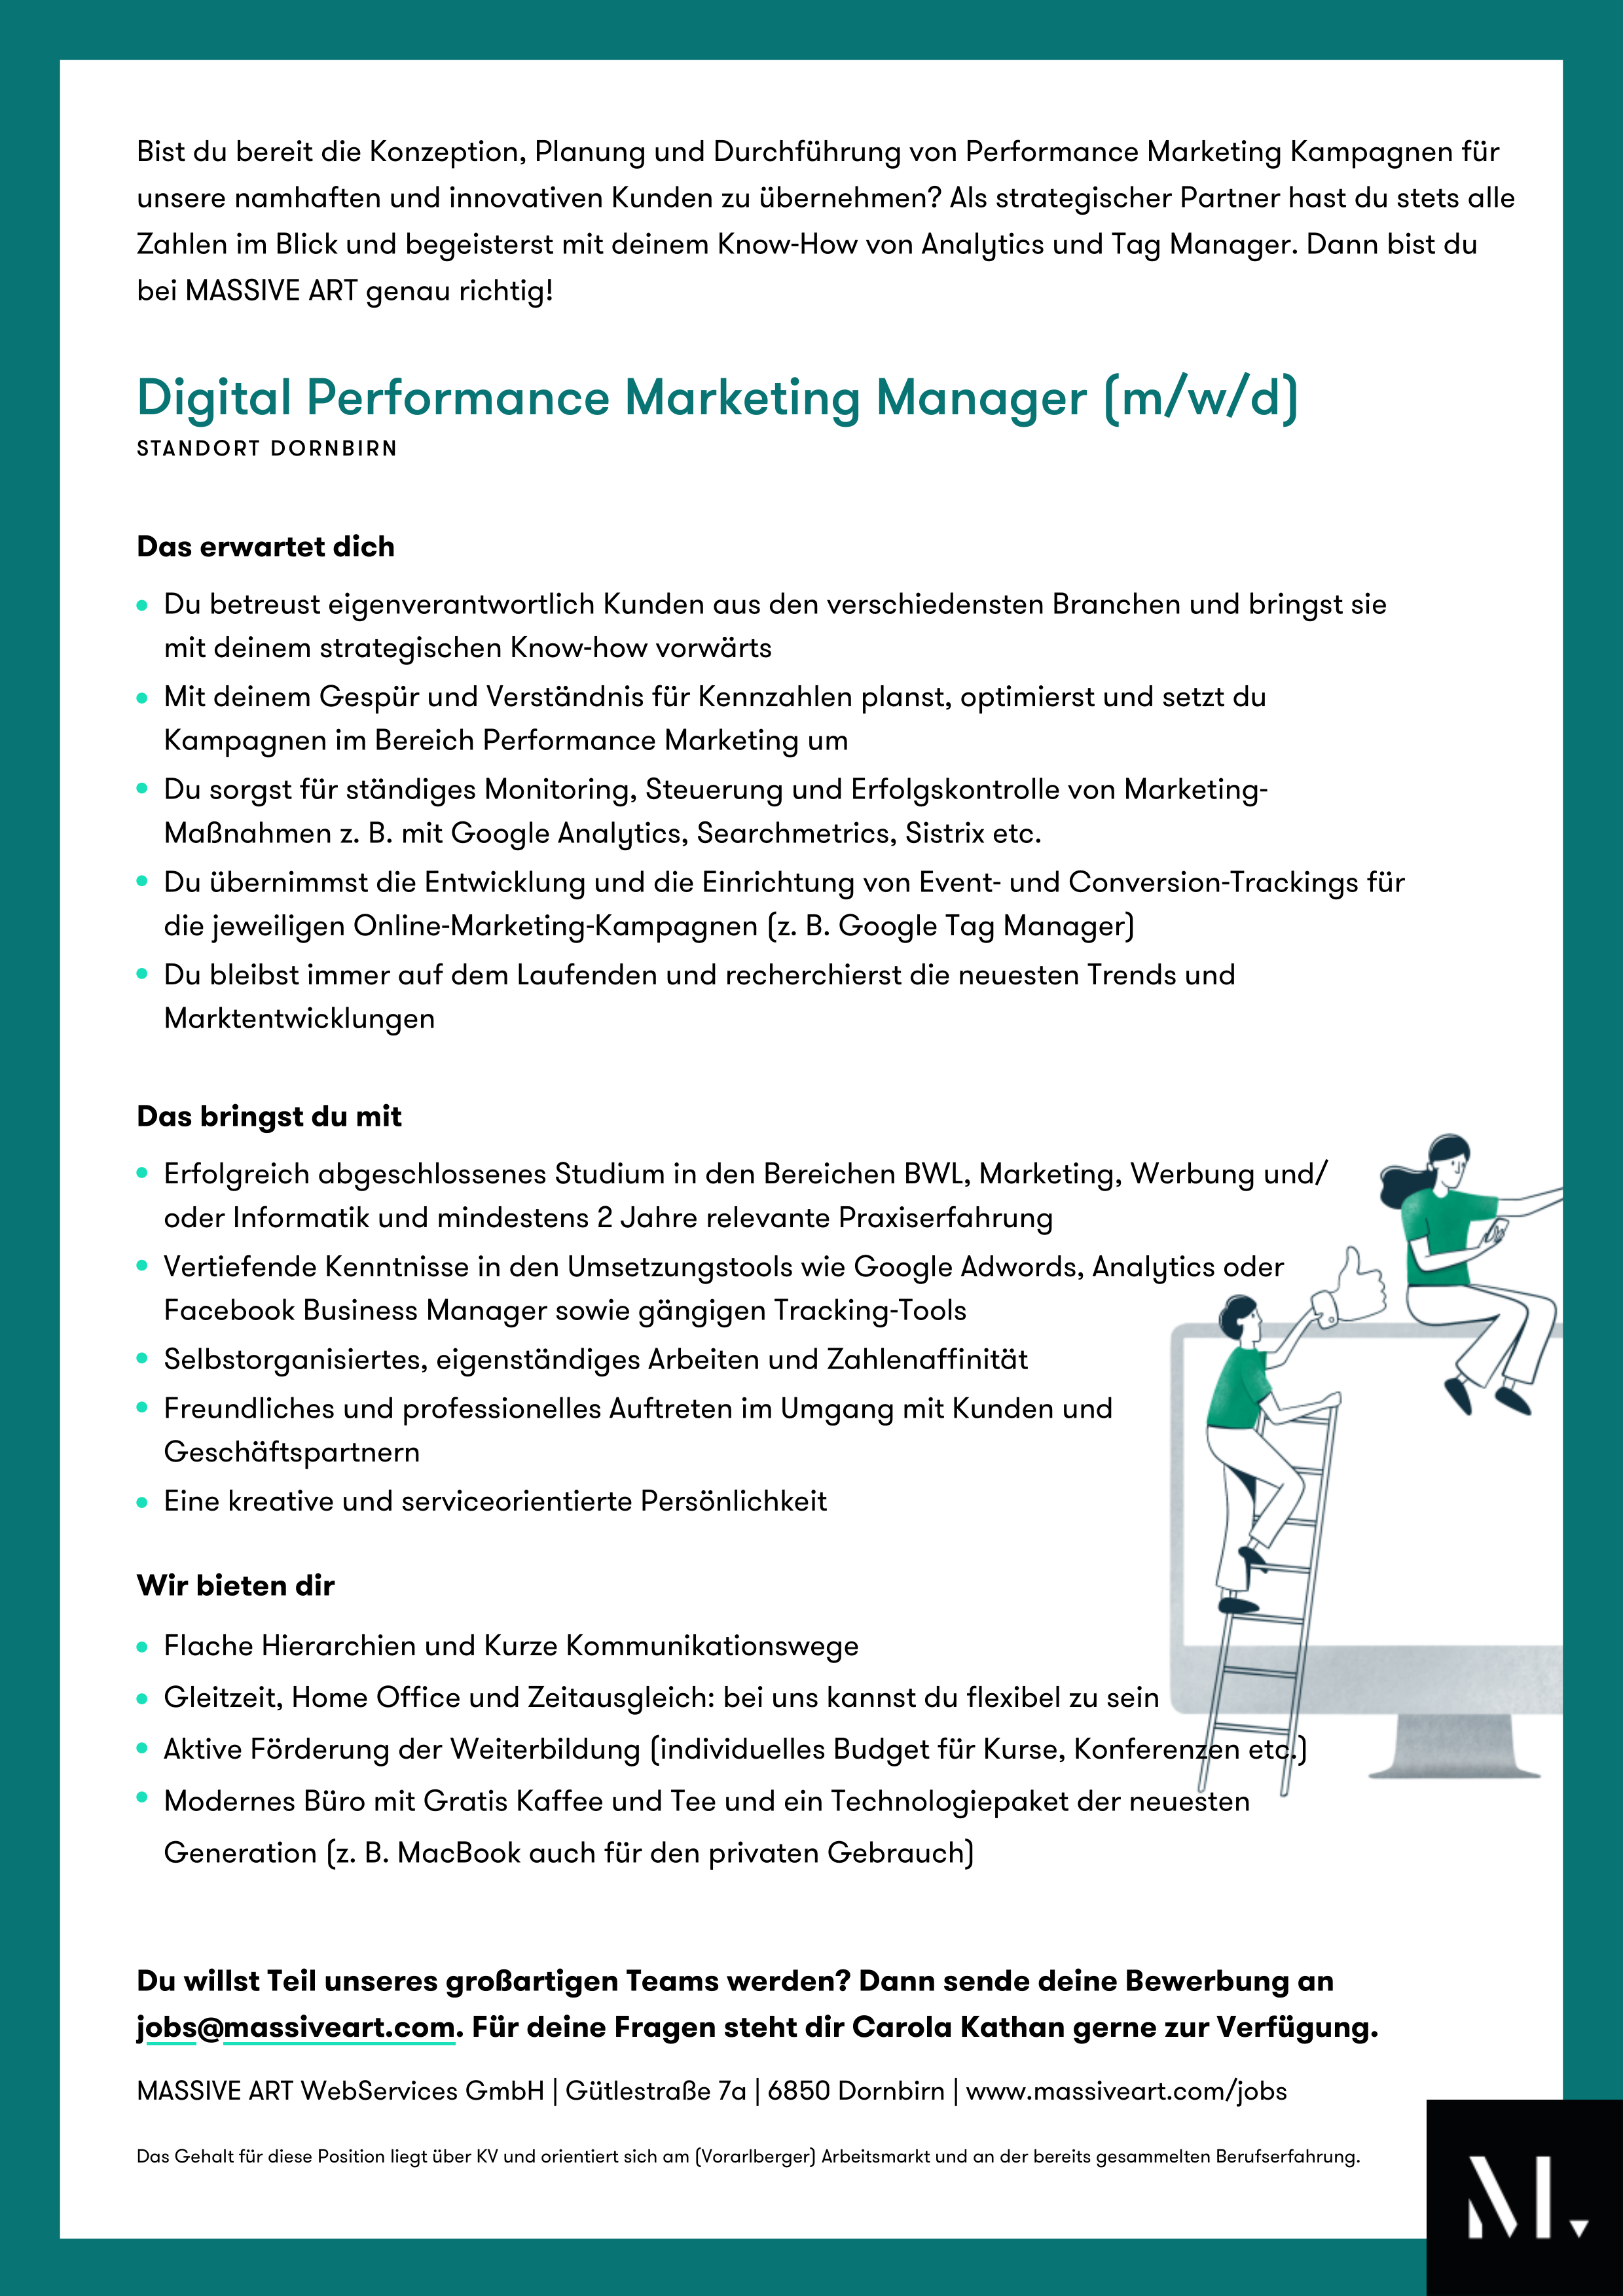 Digital Performance Marketing Manager (m/w/d)